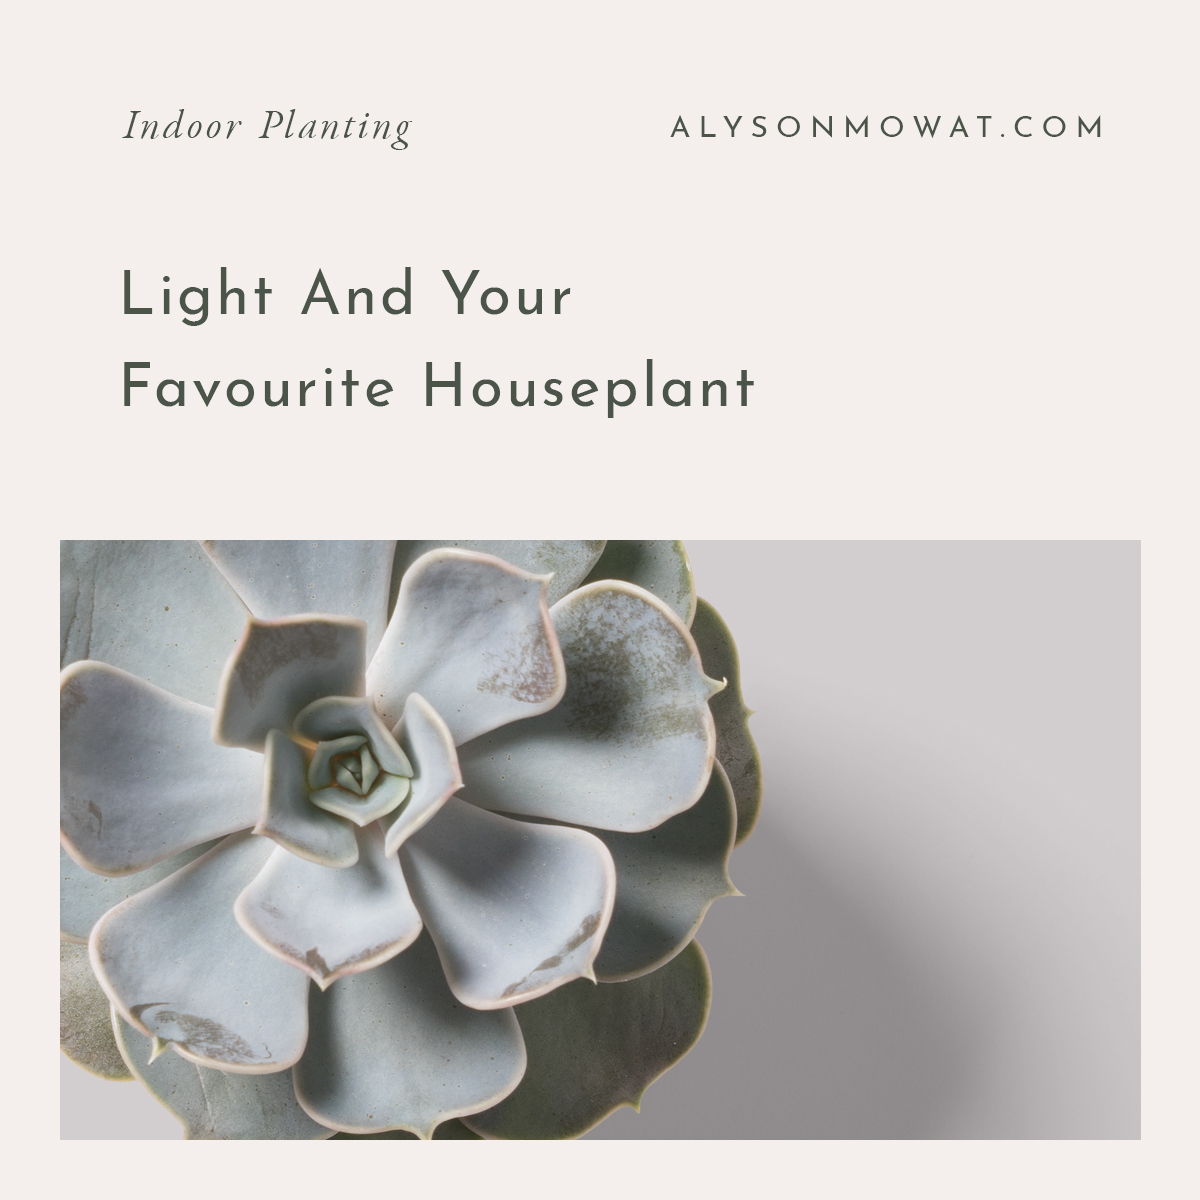 Light and your favourite houseplant